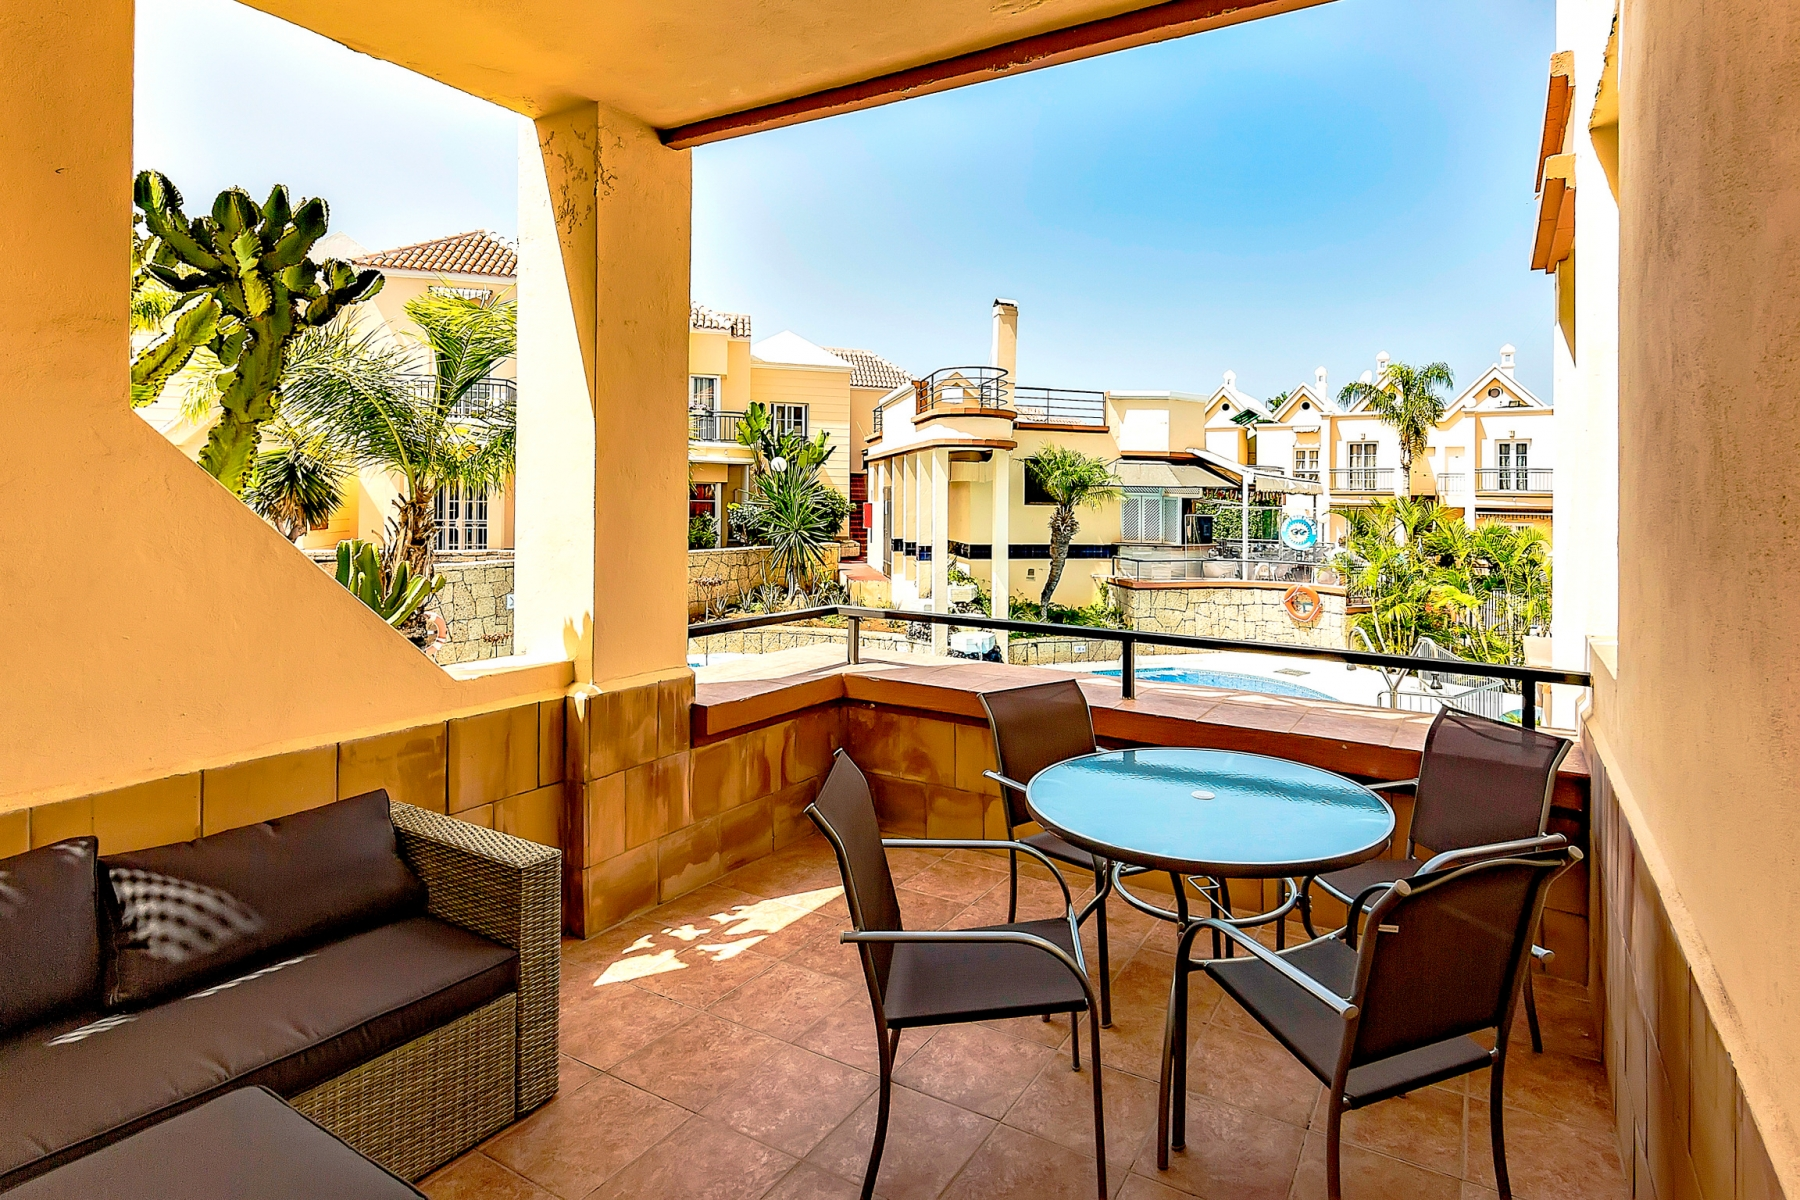 Properties for Sale in Tenerife, Canary Islands, Spain | SylkWayStar Real Estate. 1 bedroom apartment Yucca Park. Image-22593